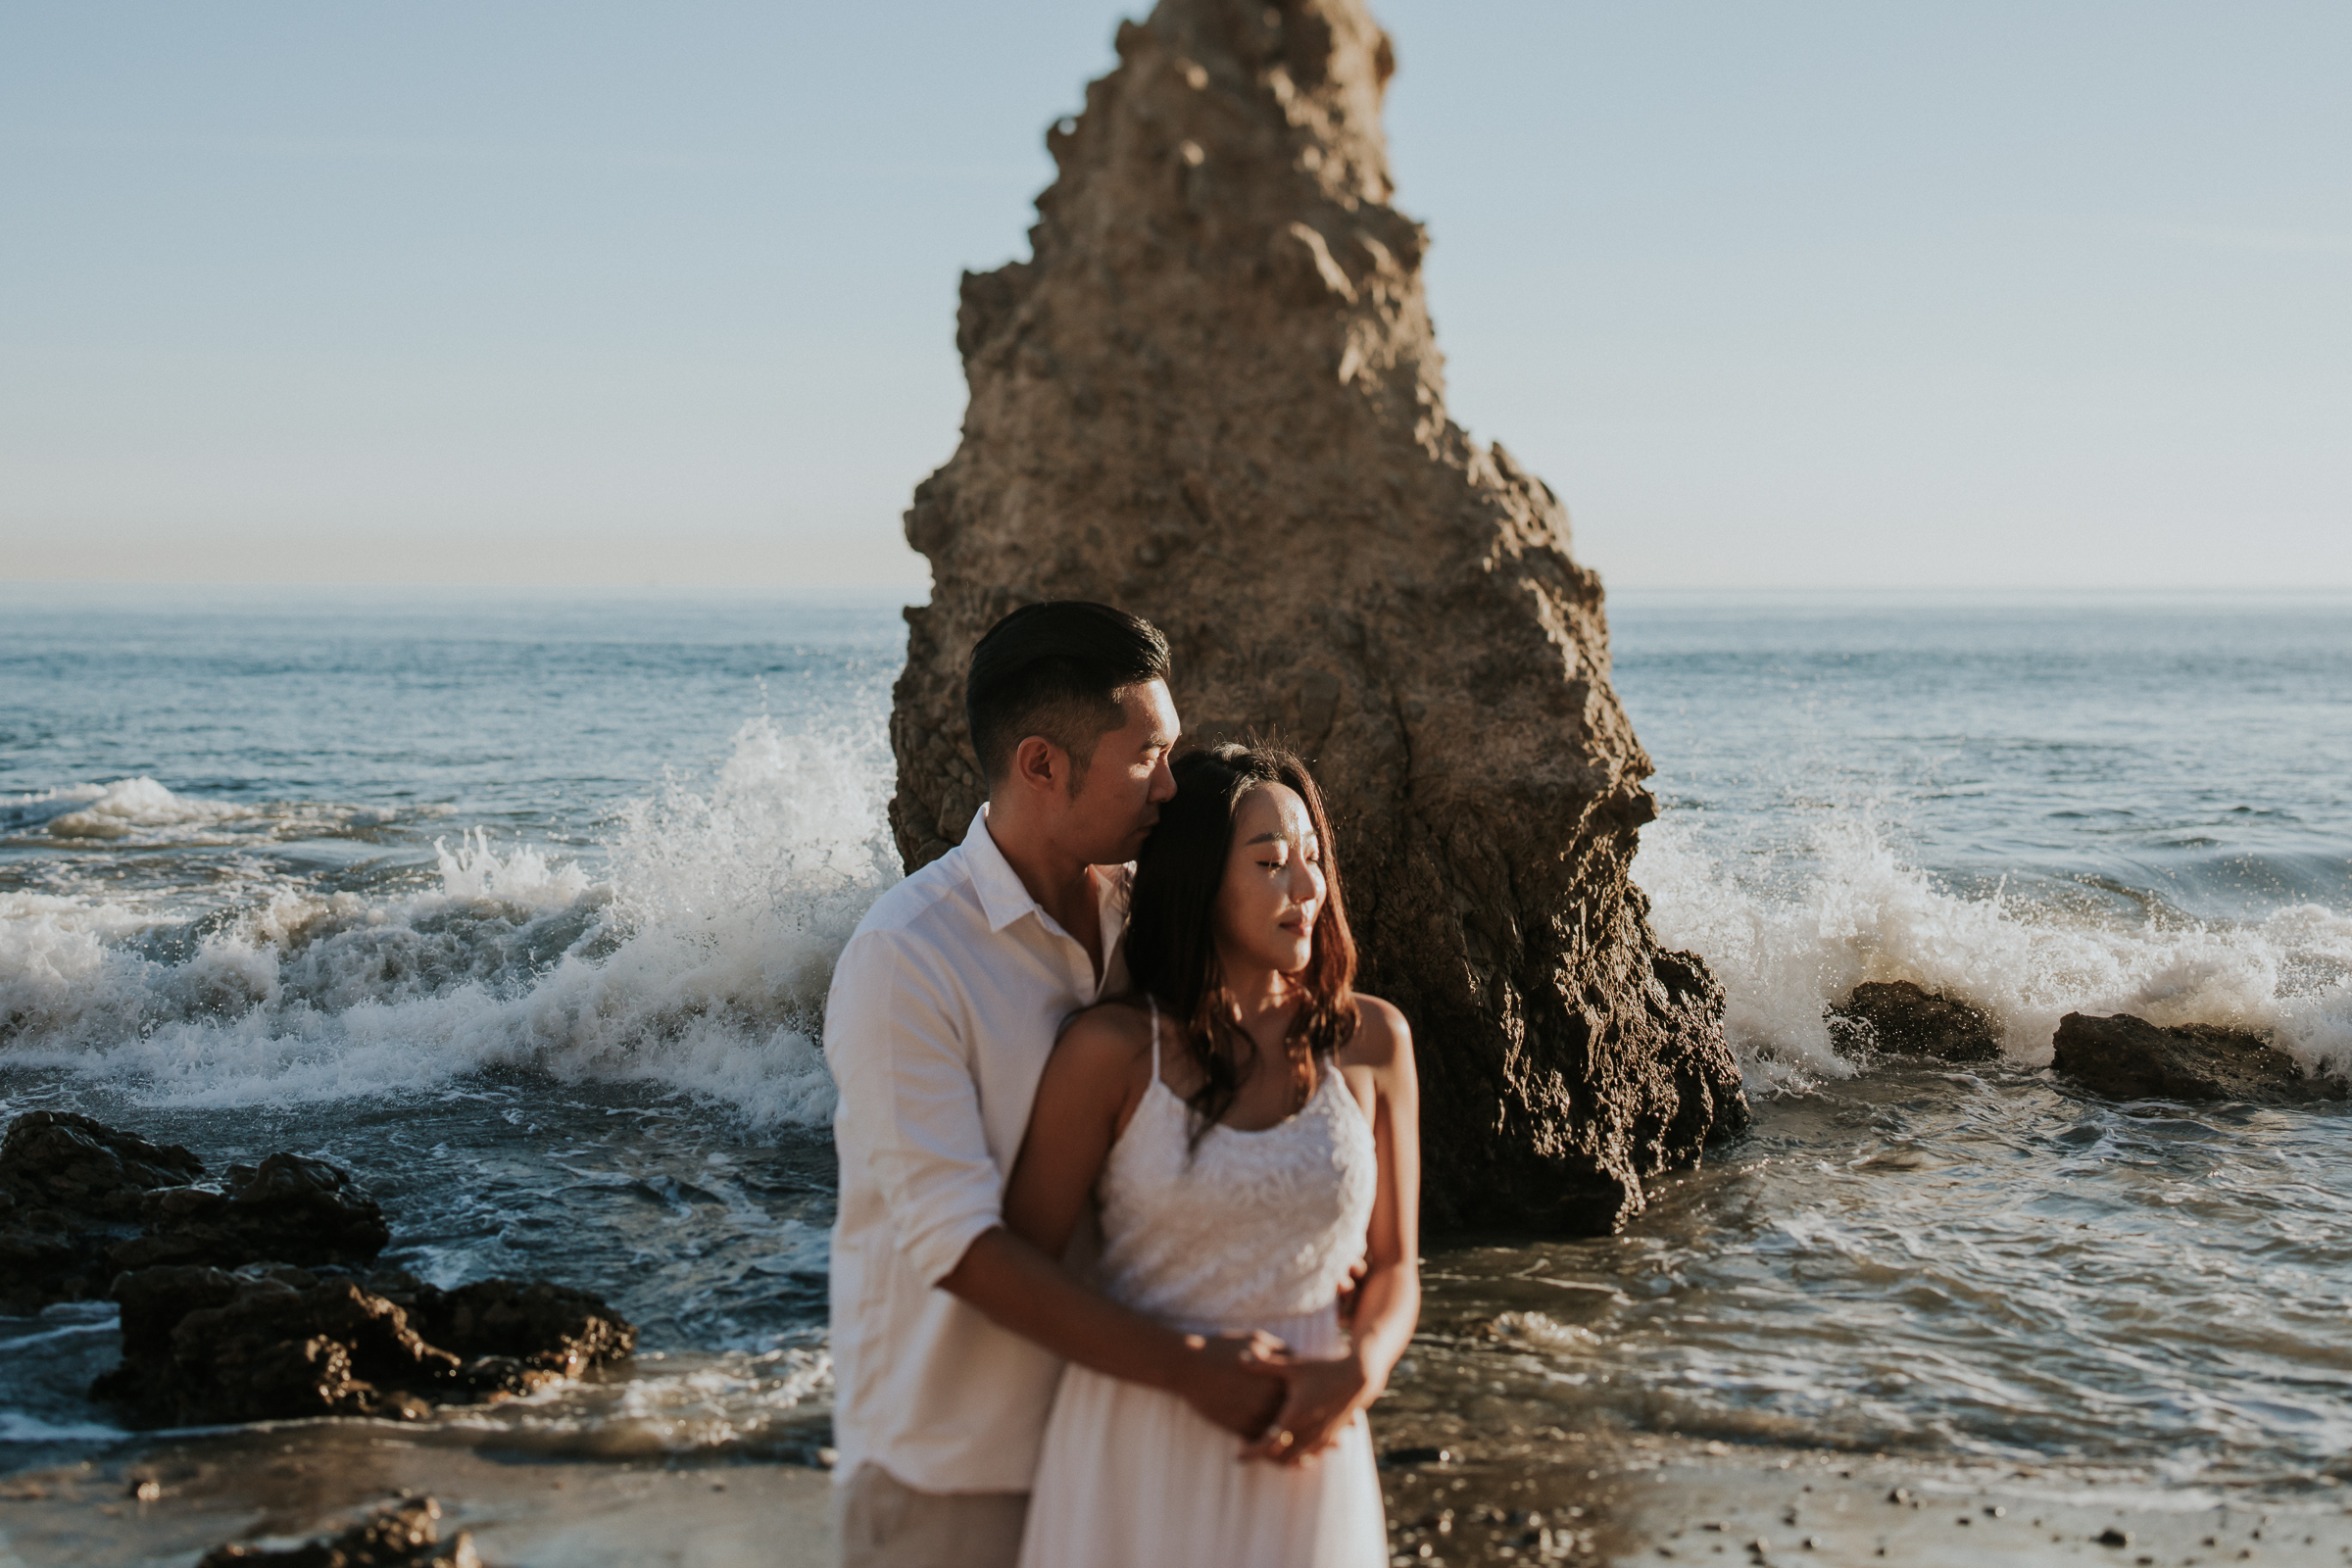 Malibu-El-Matador-State-Beach-Sunset-Engagement-Photos-Los-Angeles-Documentary-Wedding-Photographer-17.jpg